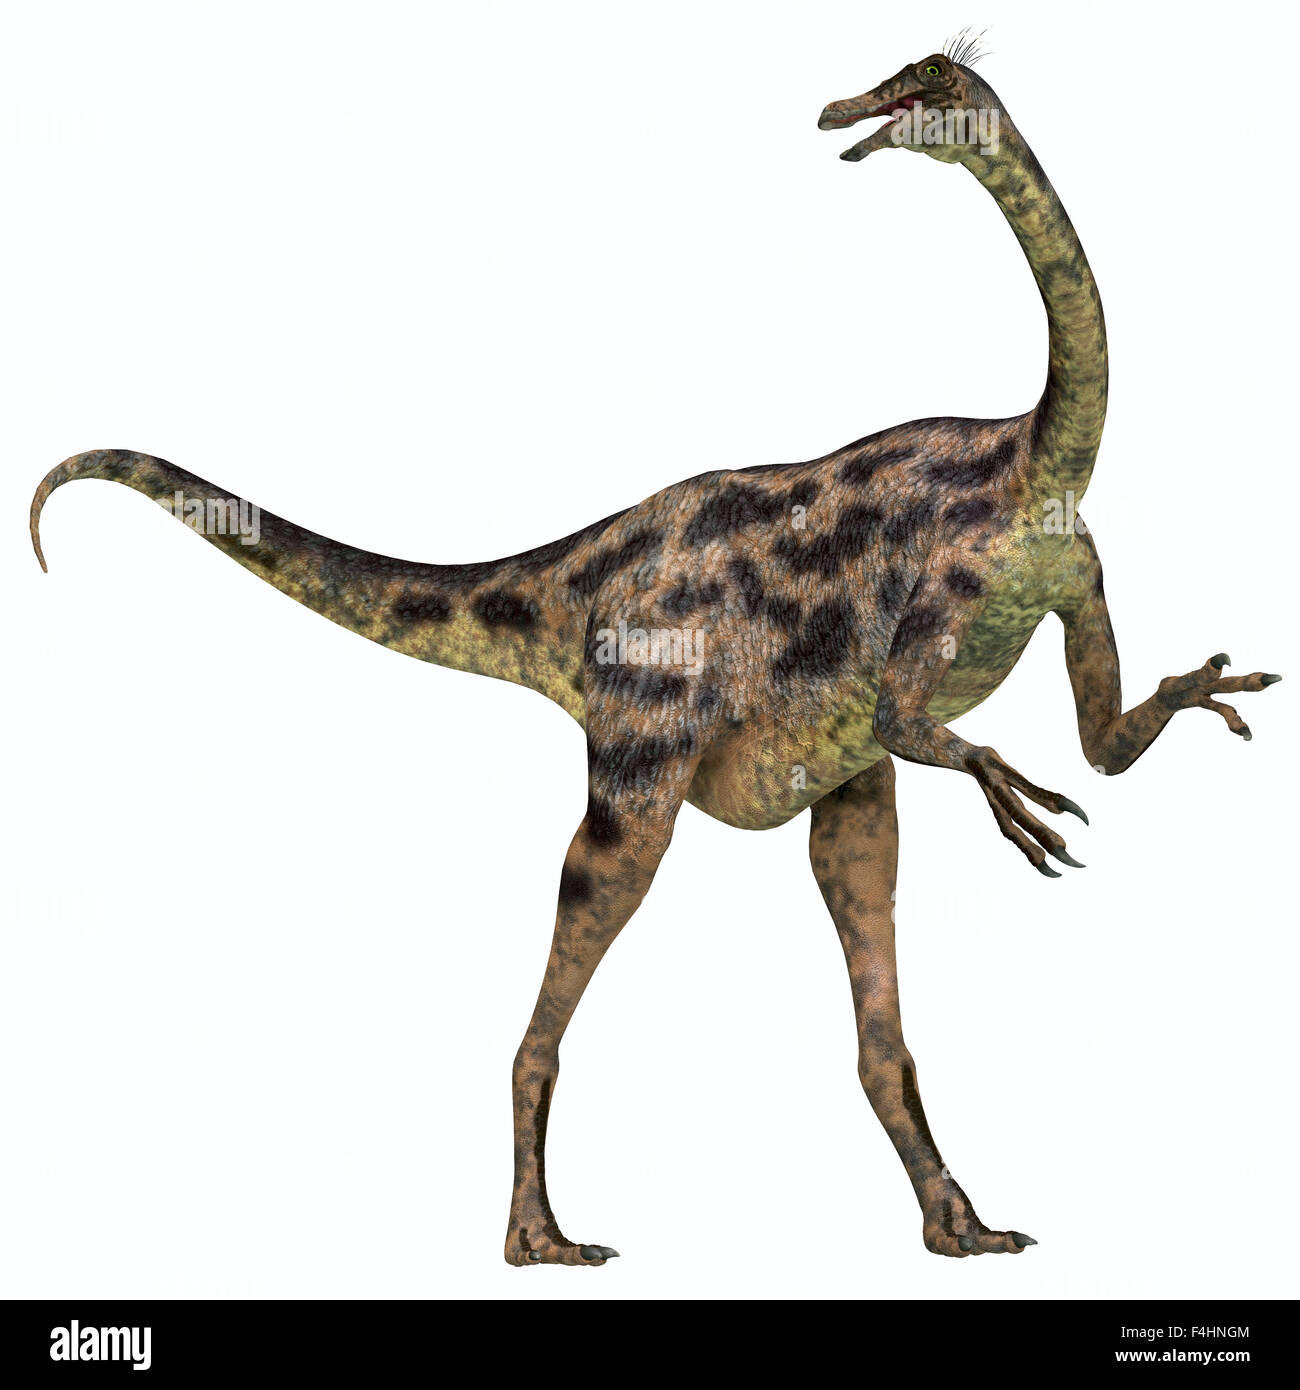 Gallimimus was an omnivorous dinosaur that lived in Mongolia during the Cretaceous Period. - Stock Image